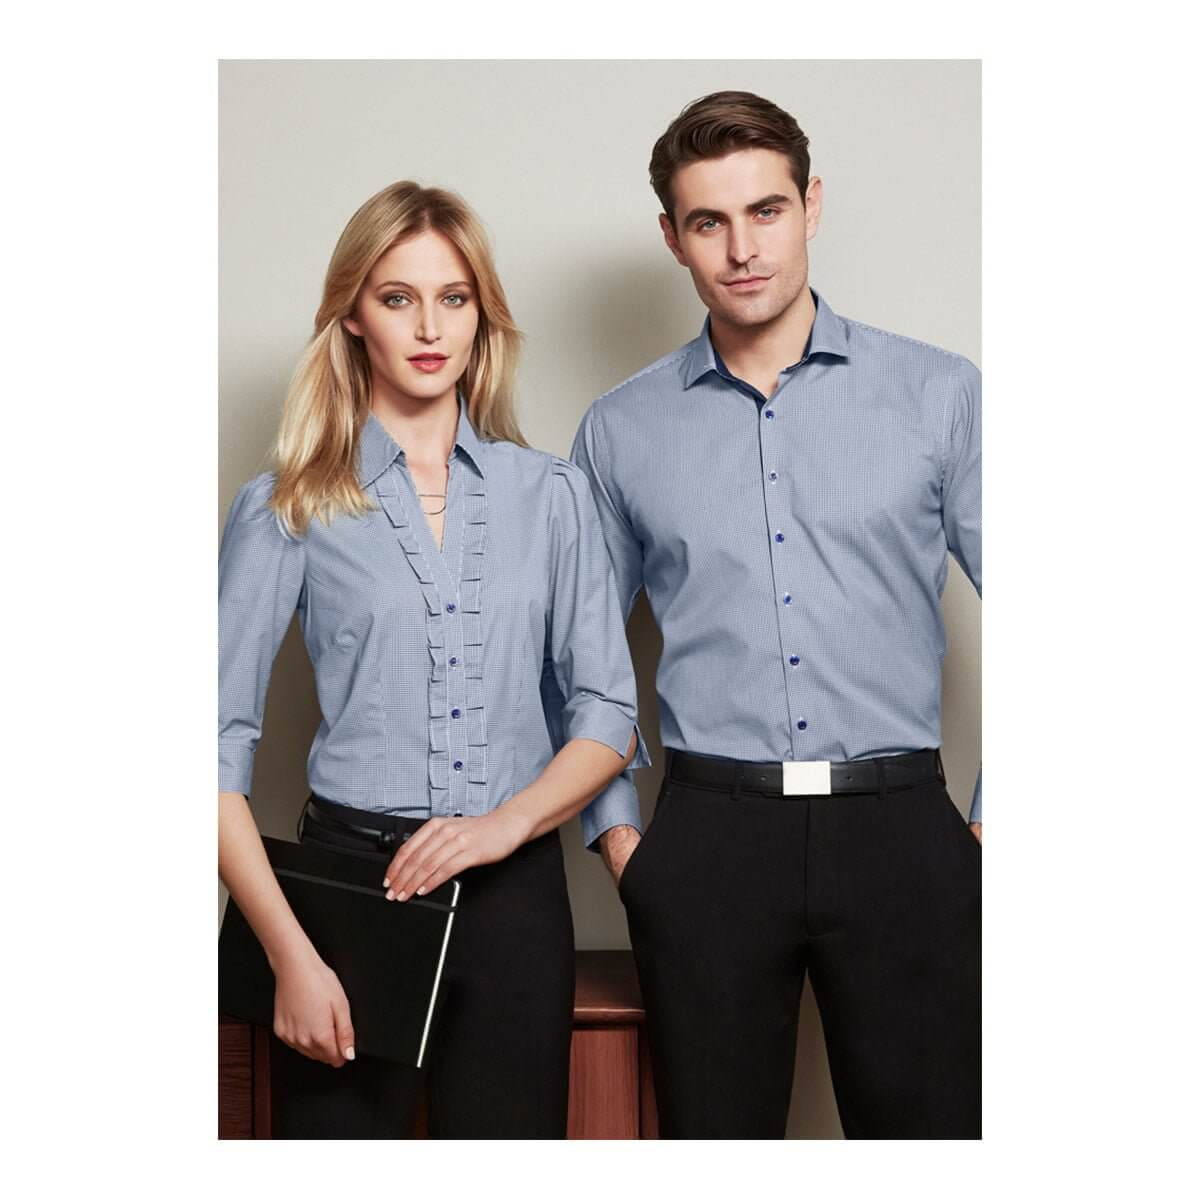 Men and Women Business Outfit